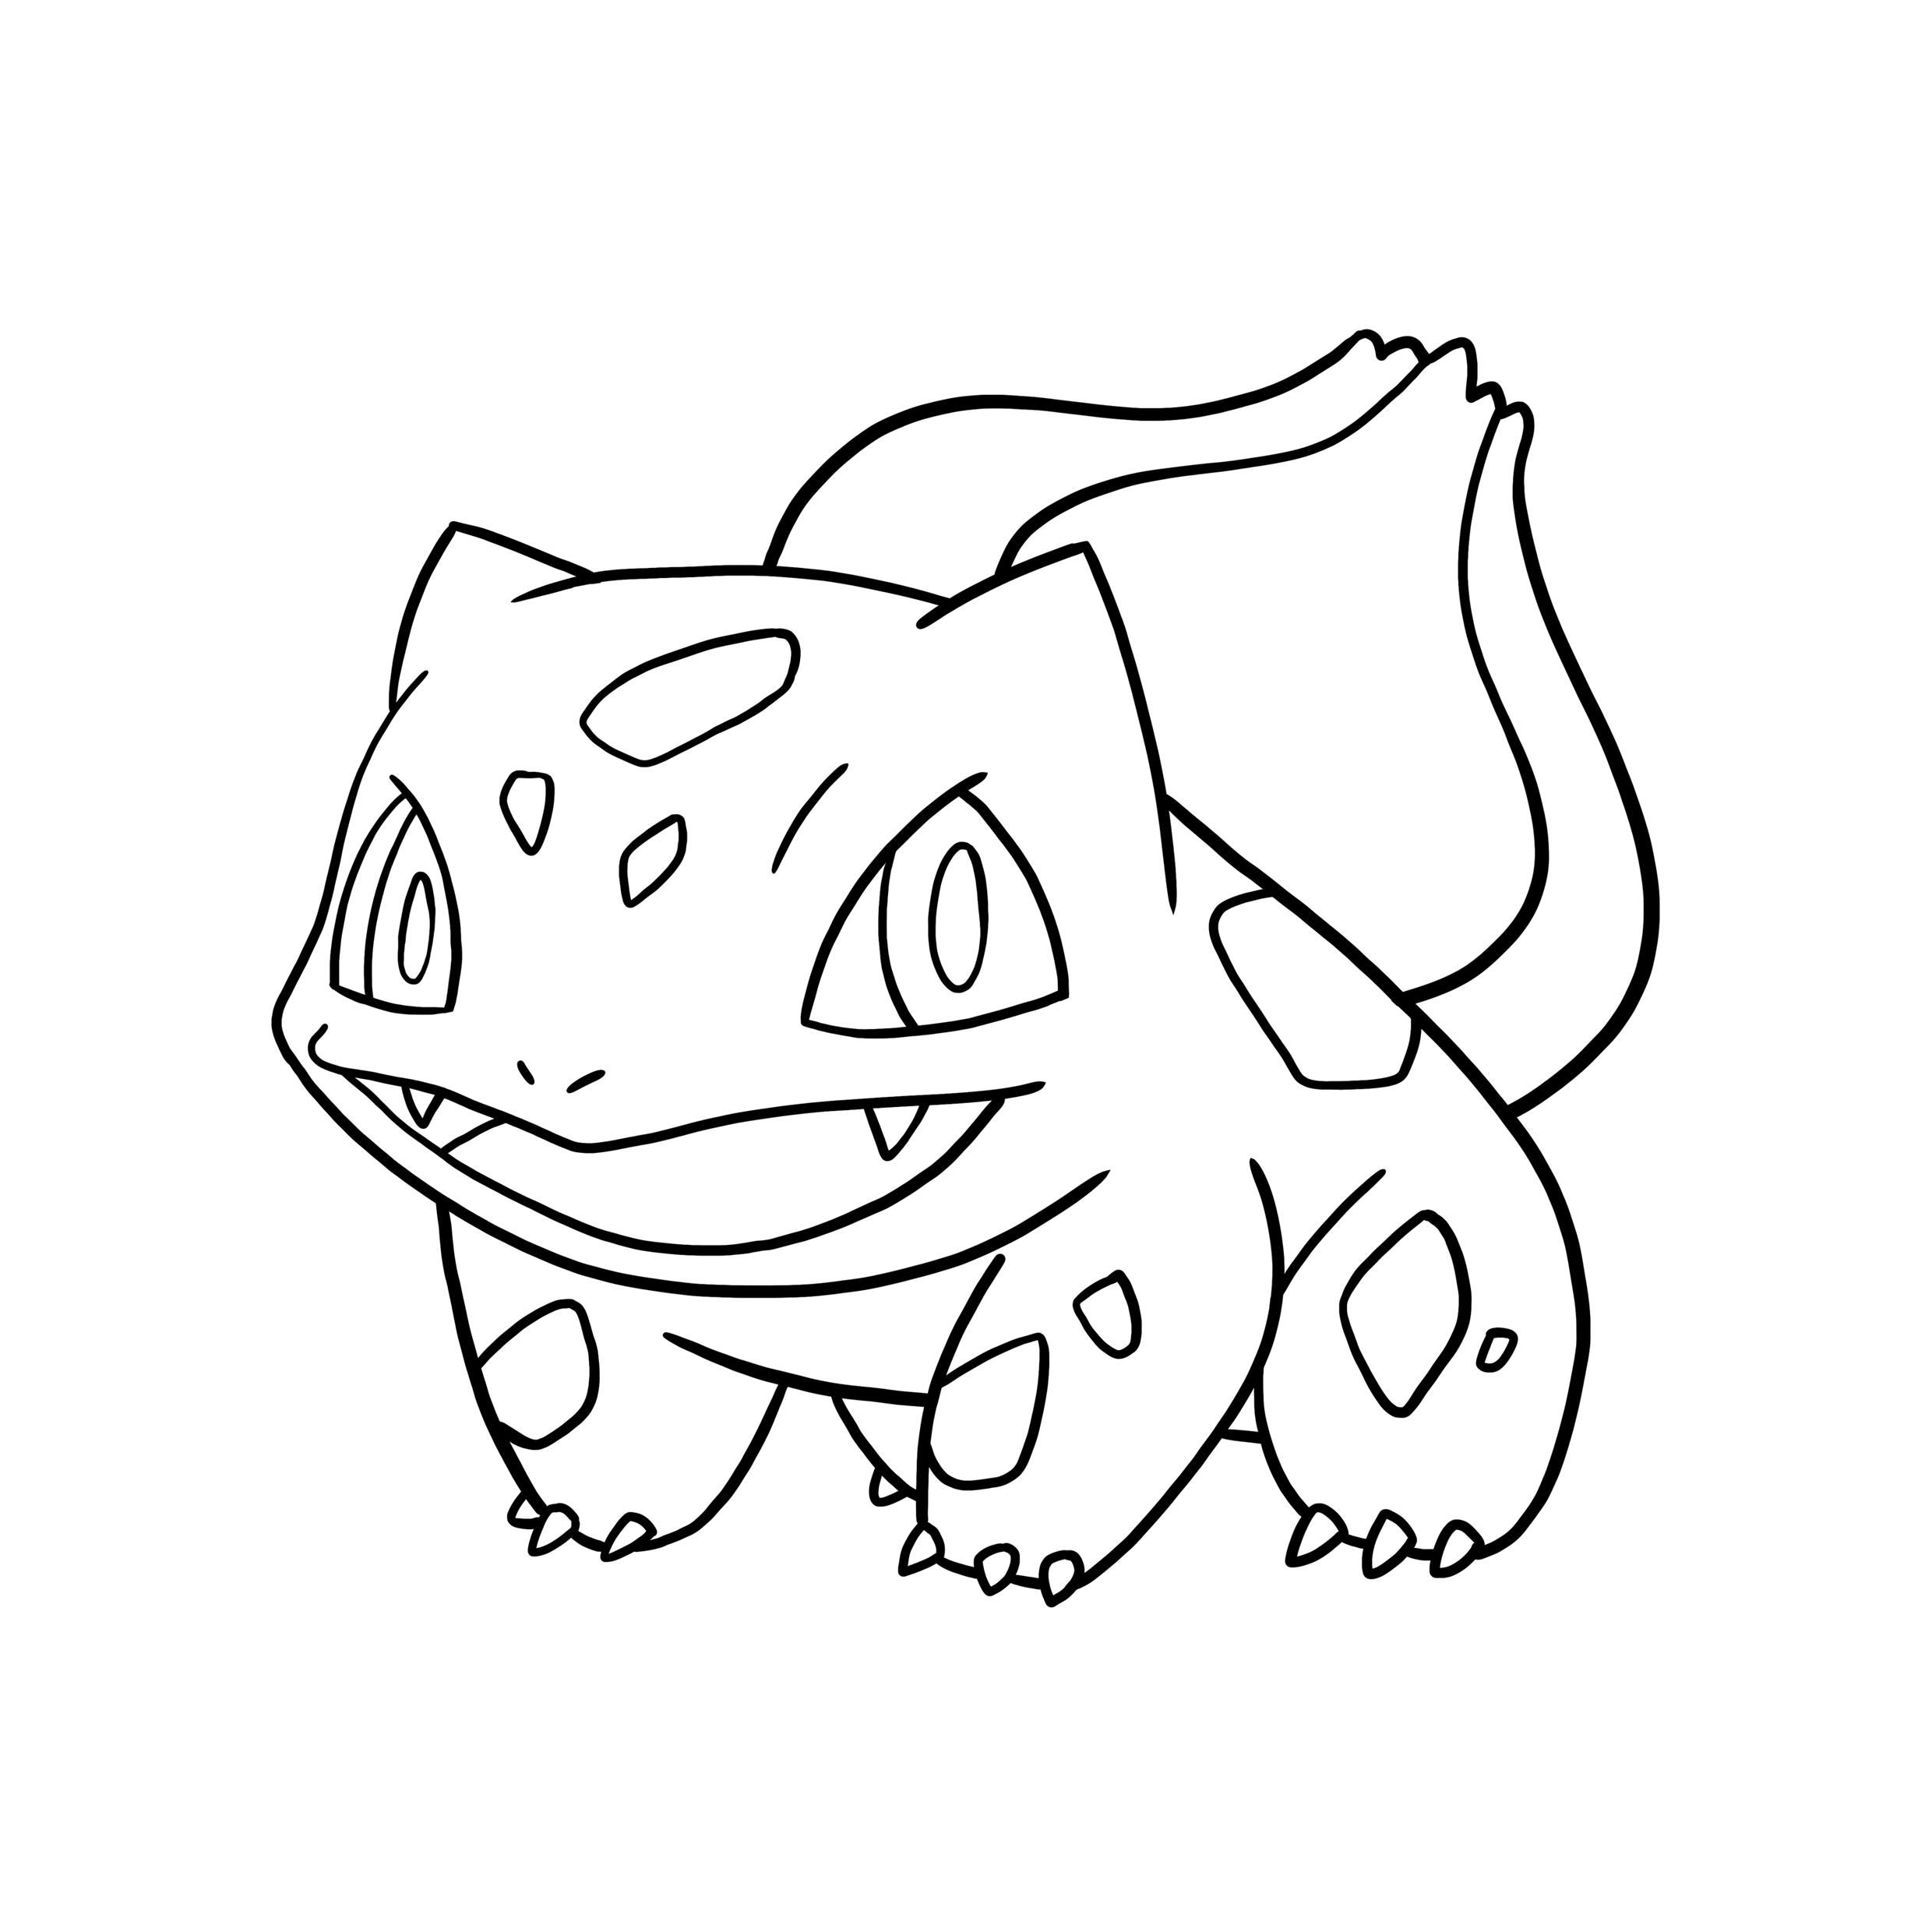 Print A Lot Of Those Pokemon Coloring Sheets And Then Create Vibrant Cover Binding To